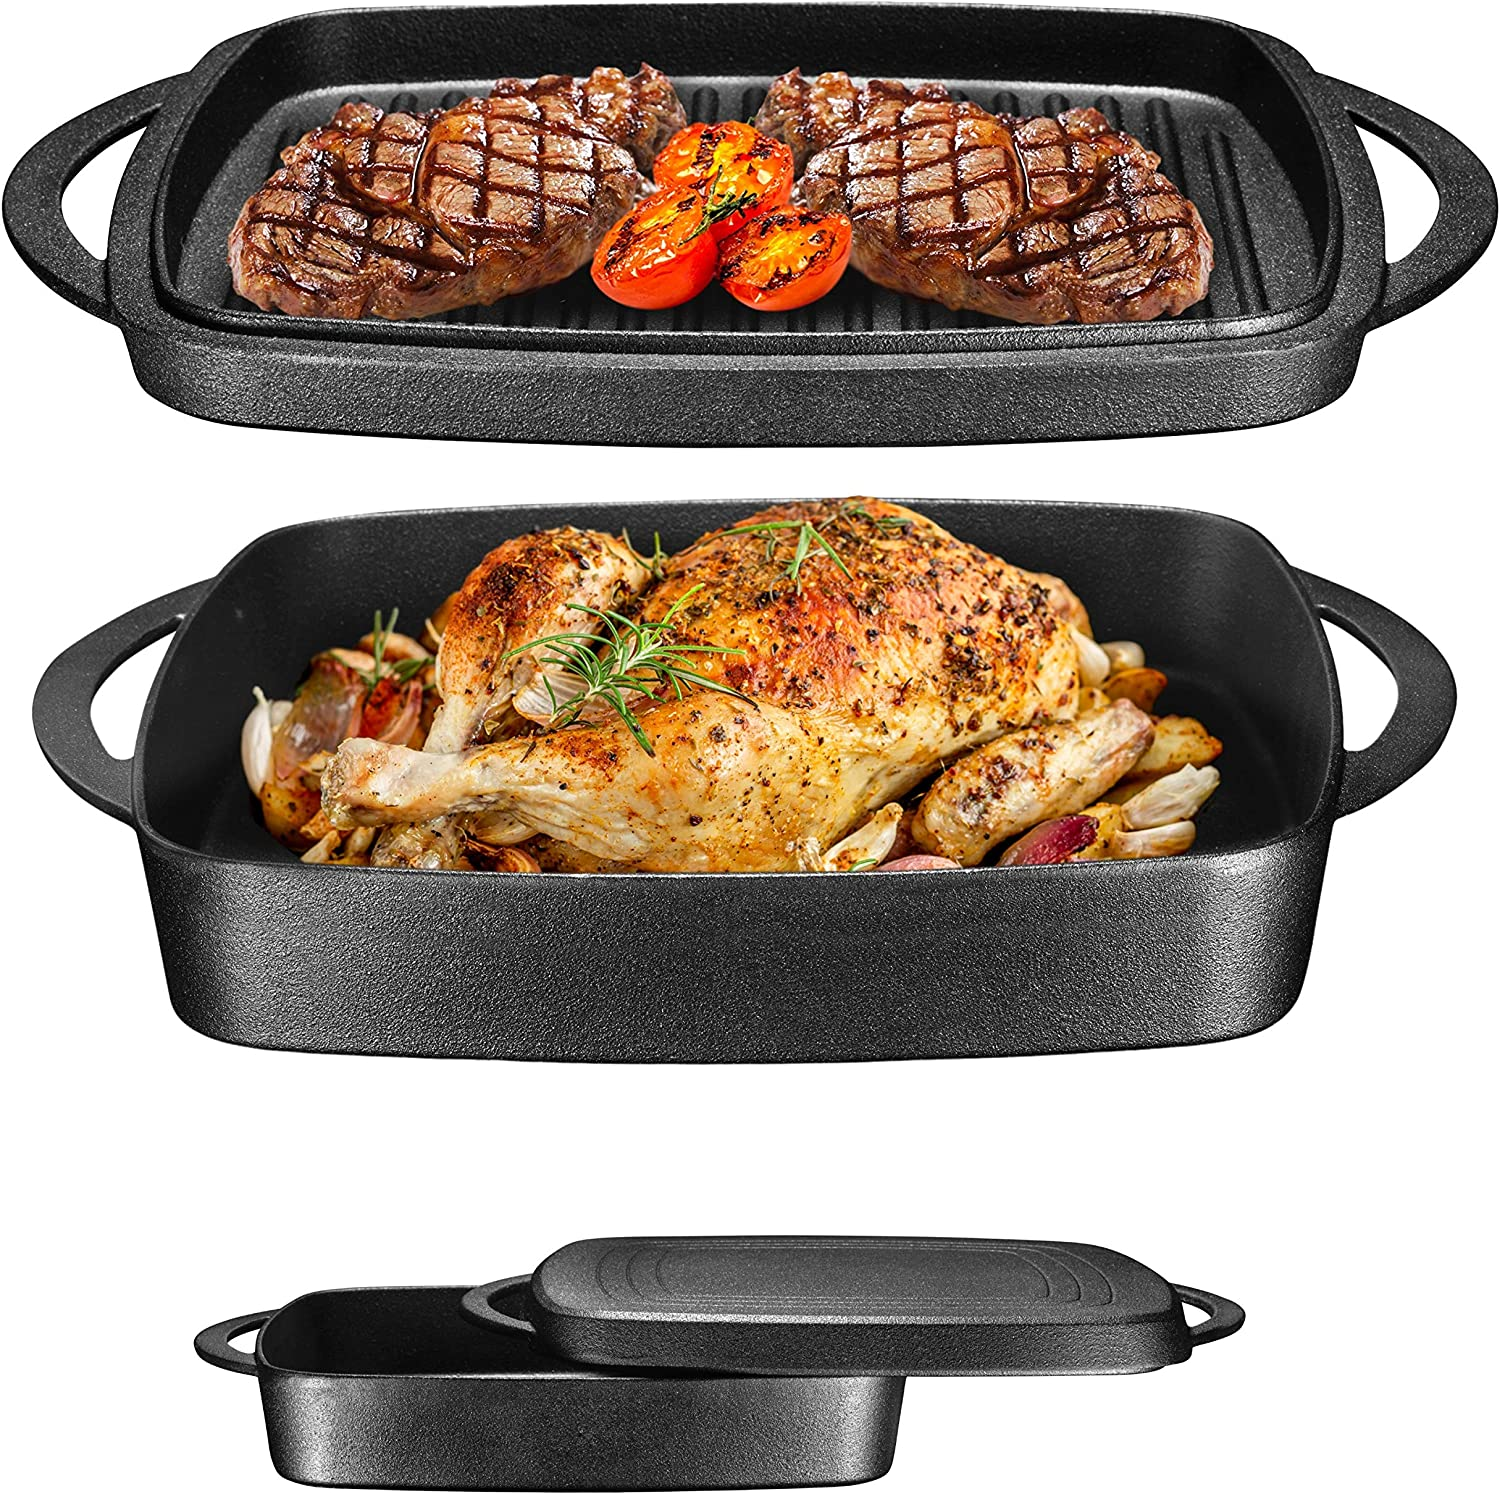 Pre-Seasoned Cast Iron Square Casserole Baker With Griddle Lid 2 in 1 Multi Baker Dish 10